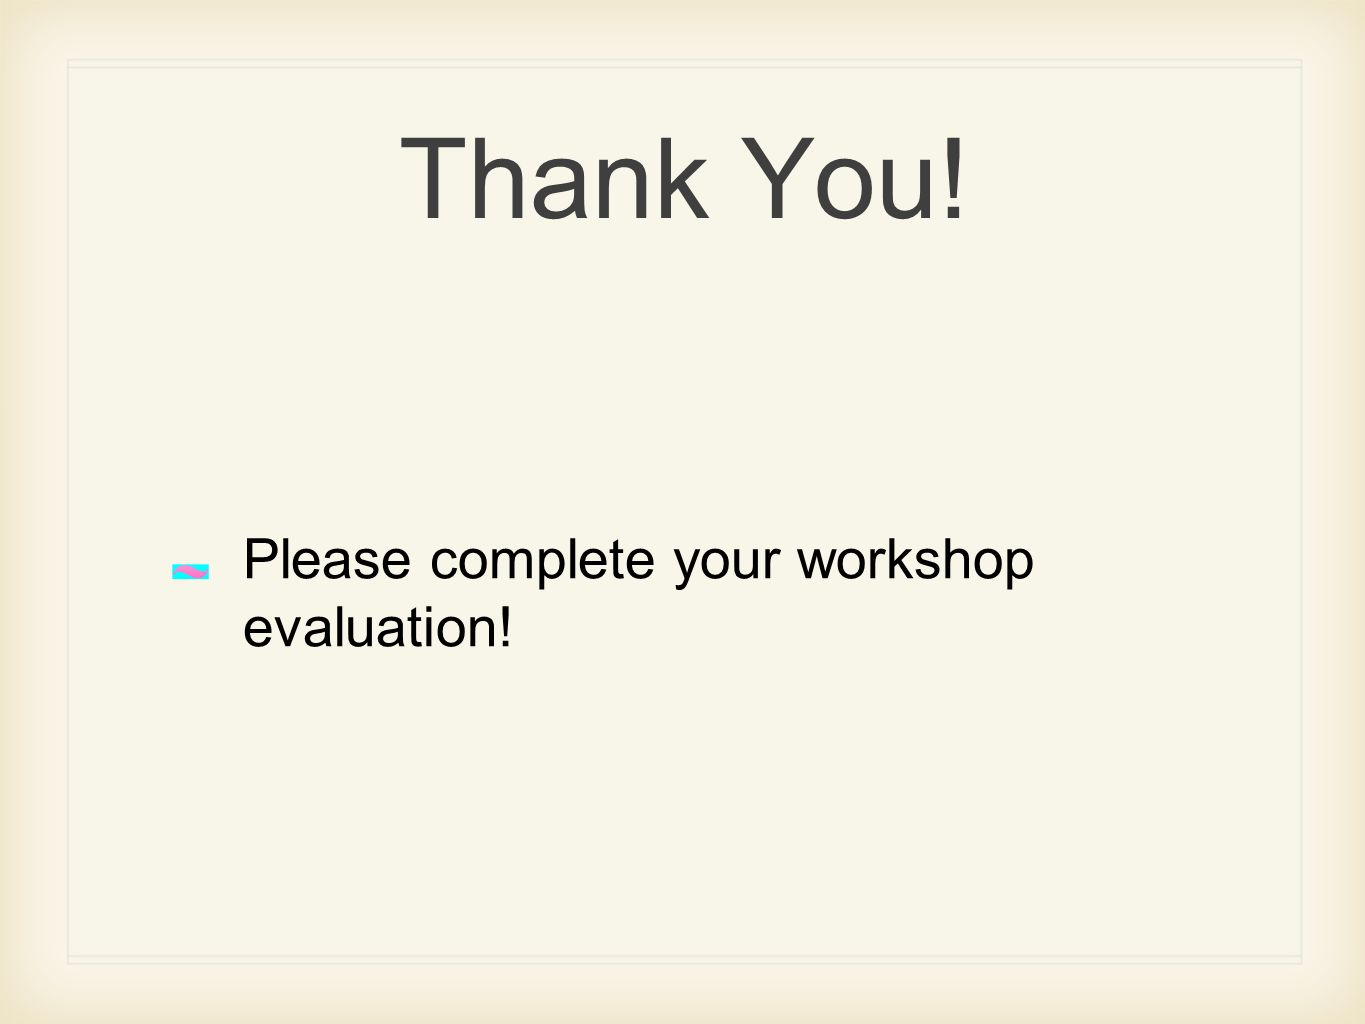 Thank You! Please complete your workshop evaluation!